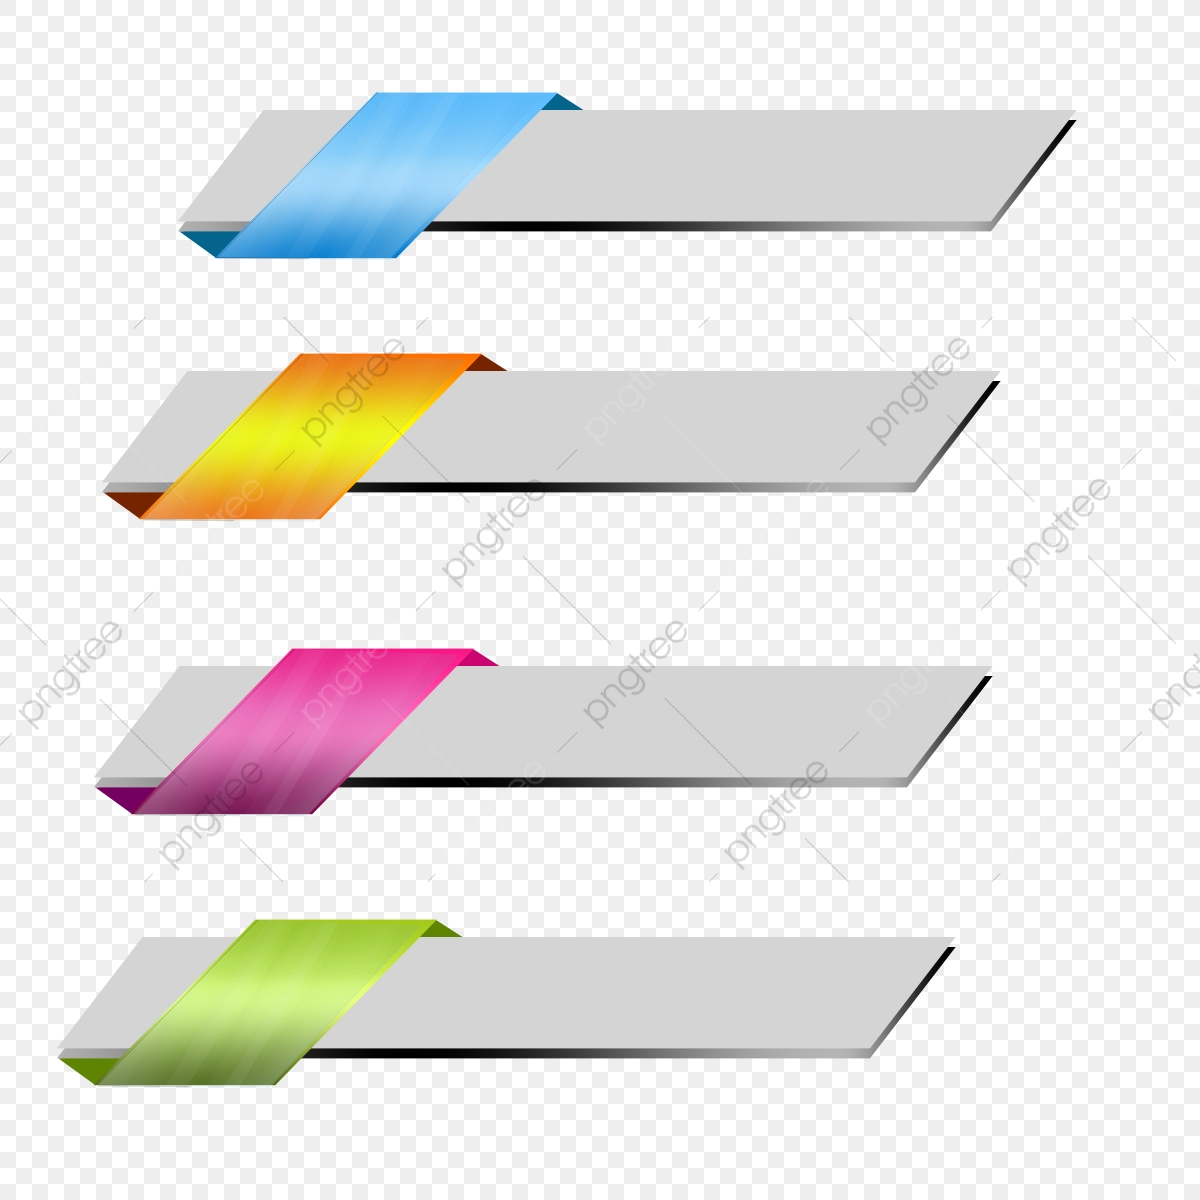 Vector Banner Design Ribbon Photoshop Png Free Download Download Icons Photoshop Icons Banner Icons Png Transparent Clipart Image And Psd File For Free Download